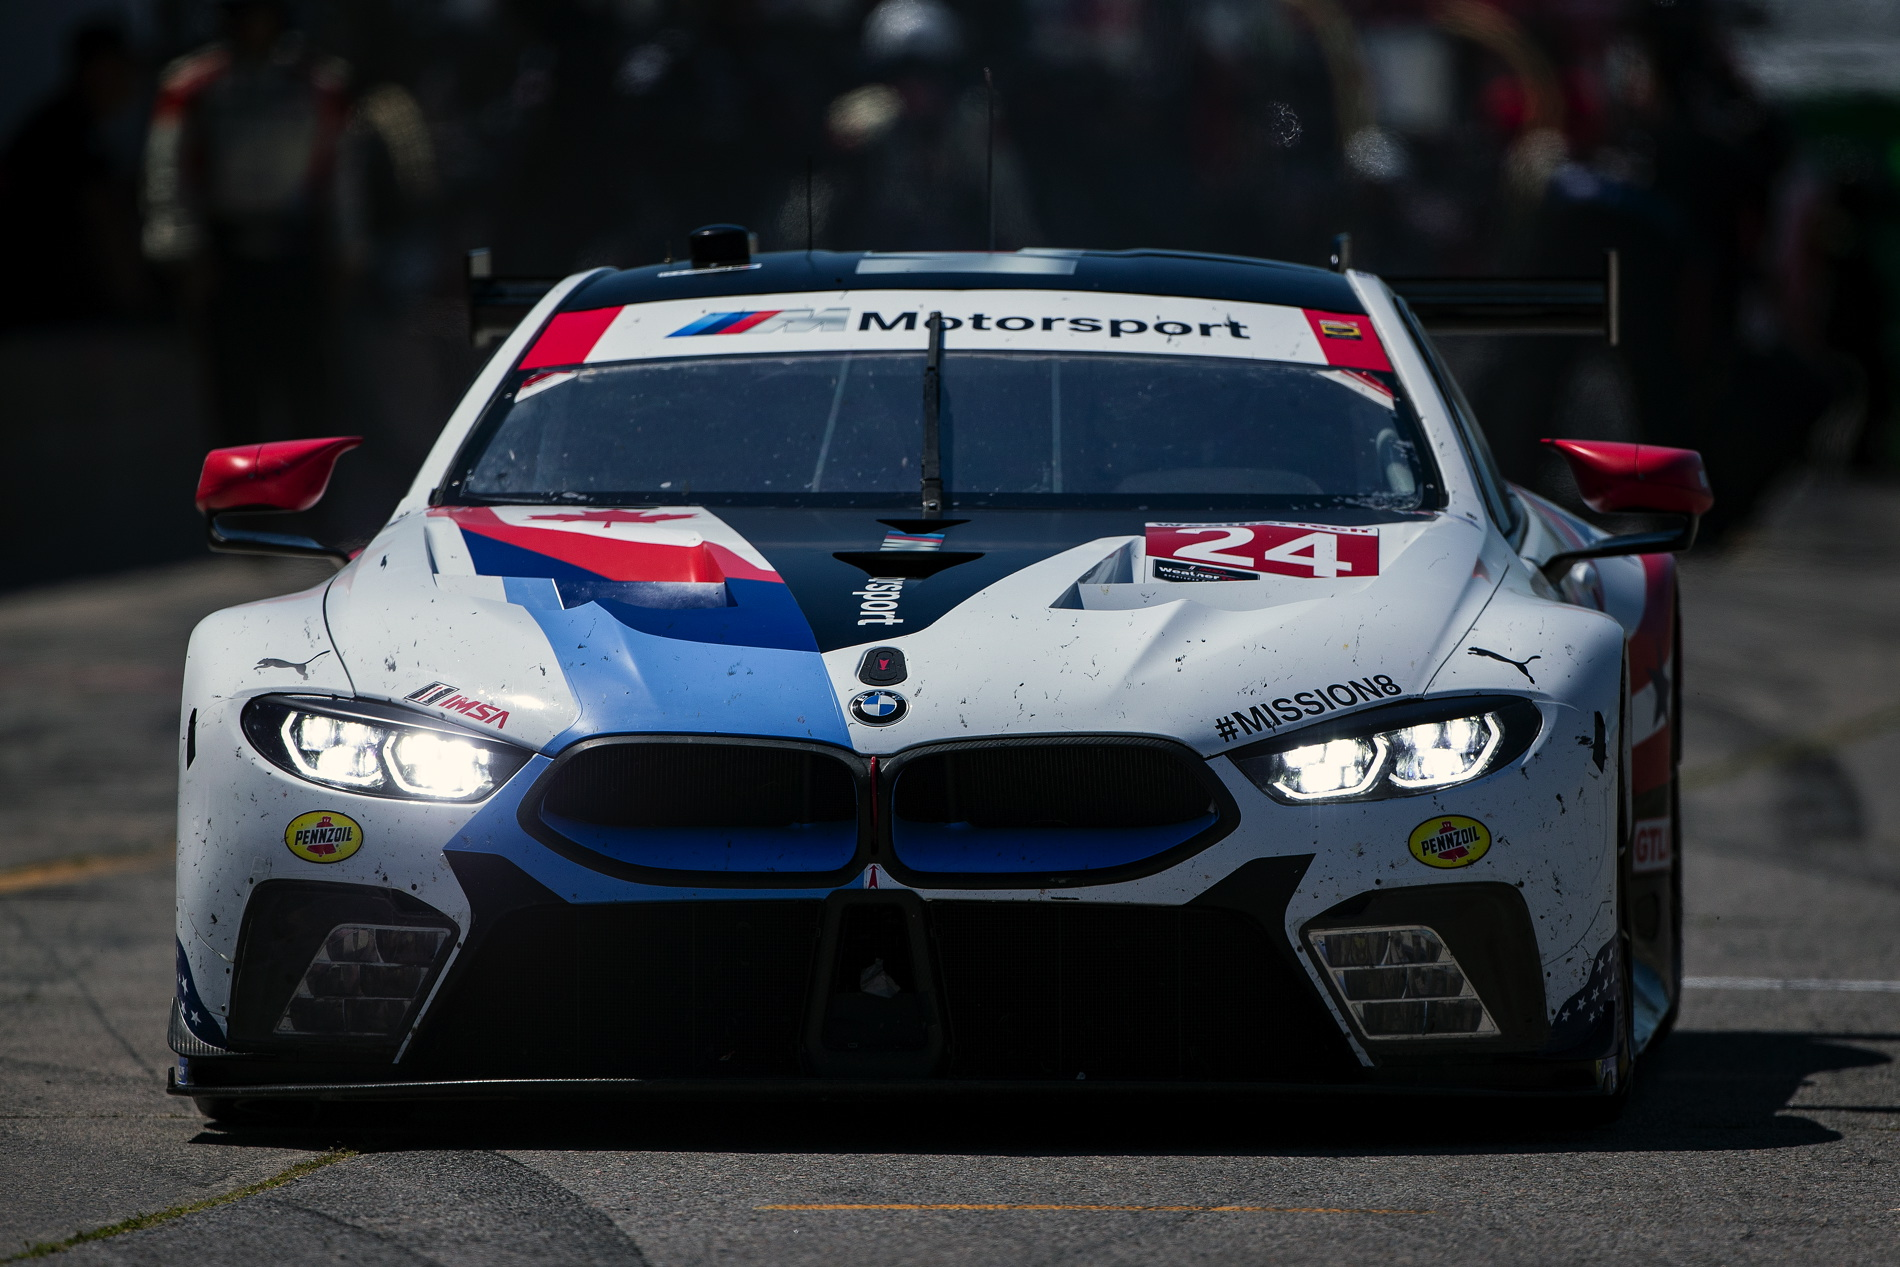 bmw m8 gte finishes 7th and 8th at mobil 1 sportscar grand prix bmw blog howldb. Black Bedroom Furniture Sets. Home Design Ideas